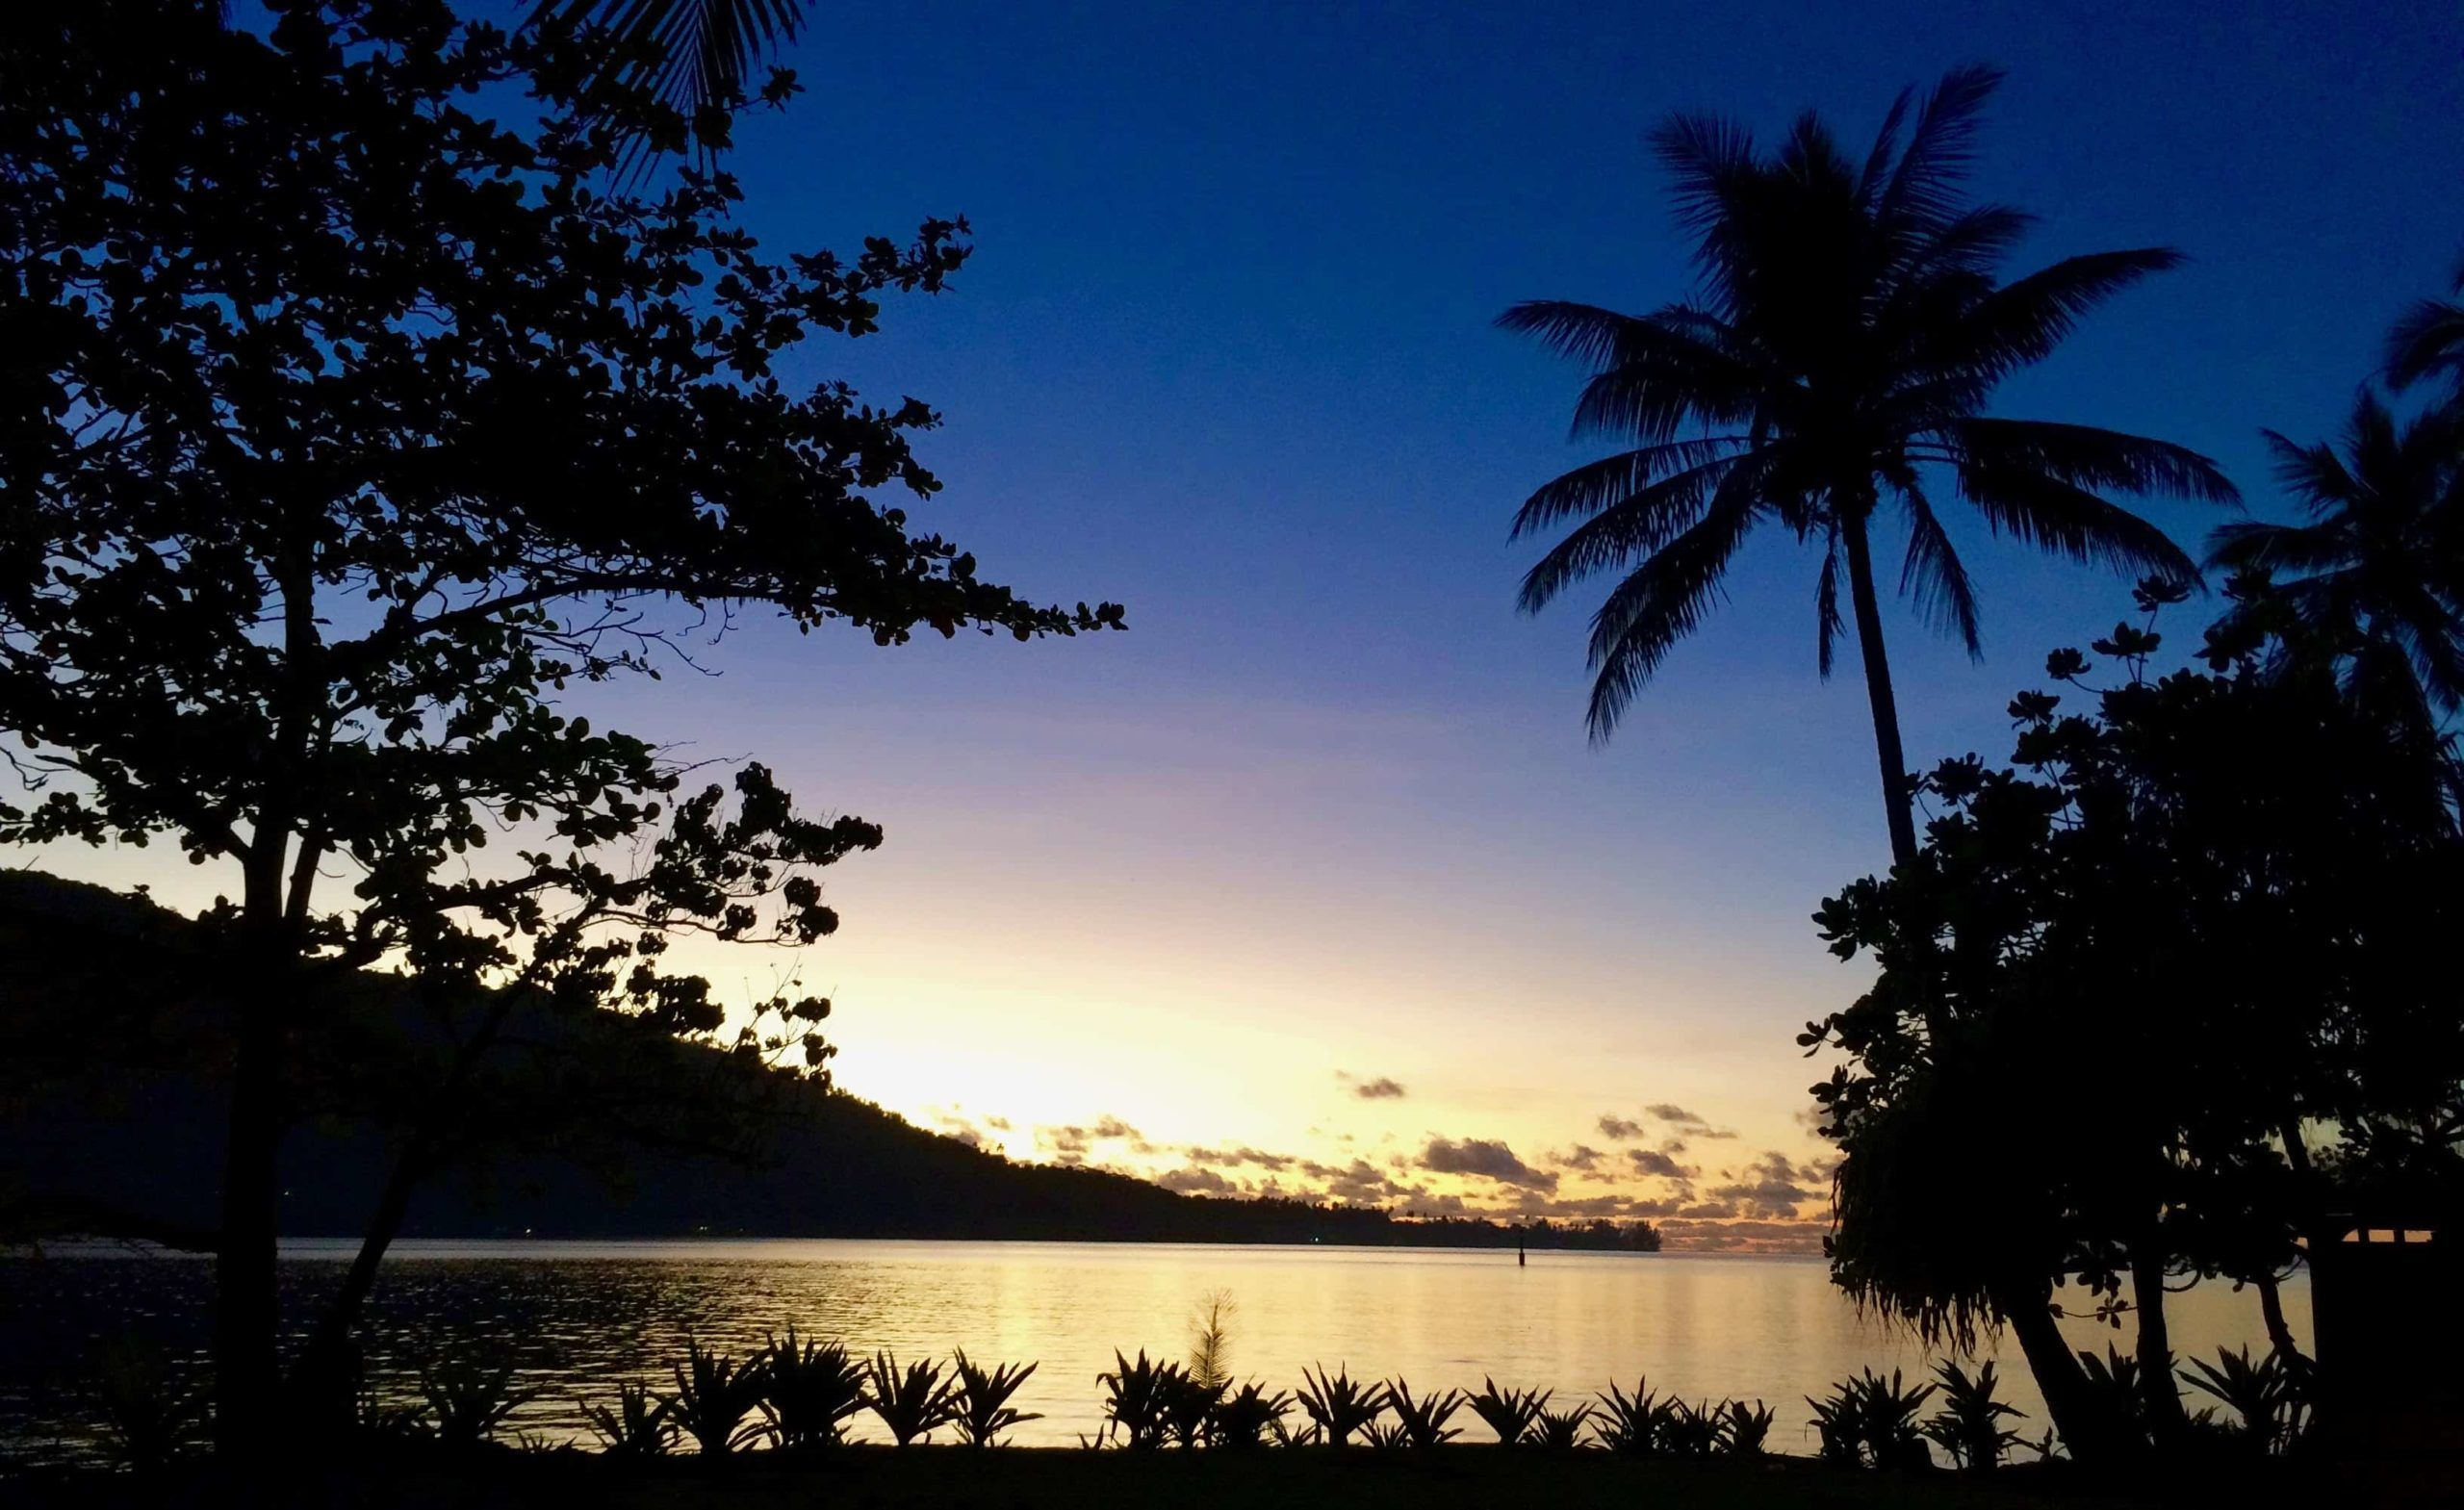 Sunset over the mountains in Moorea, French Polynesia